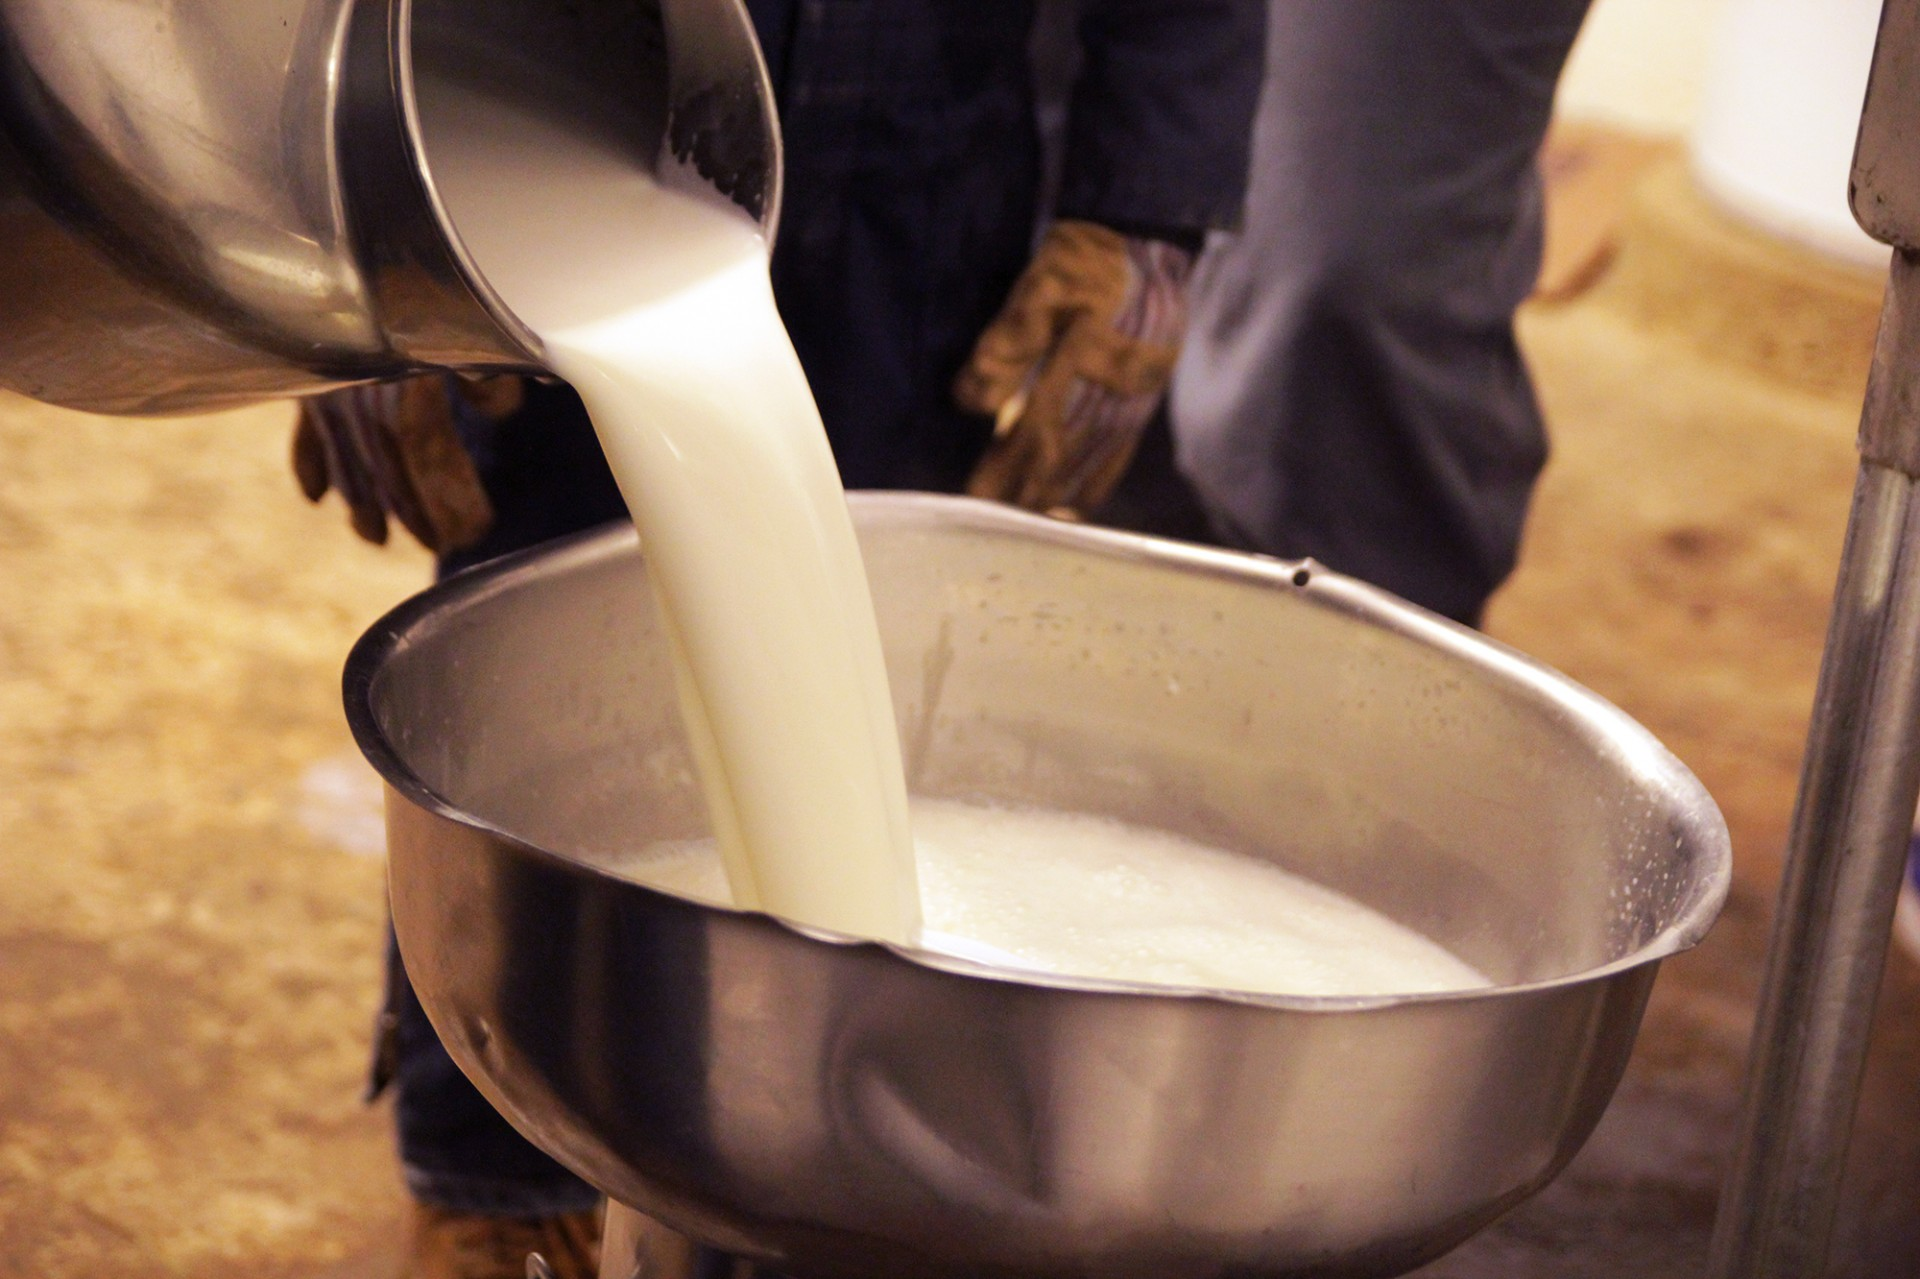 The U.S. Centers for Disease Control and Prevention cautions that unpasteurized milk can cause serious illness, because it's a fertile breeding ground for harmful germs like salmonella and E. coli. But such warnings haven't deterred raw milk enthusiasts. Photo: Abby Wendle/Harvest Public Media